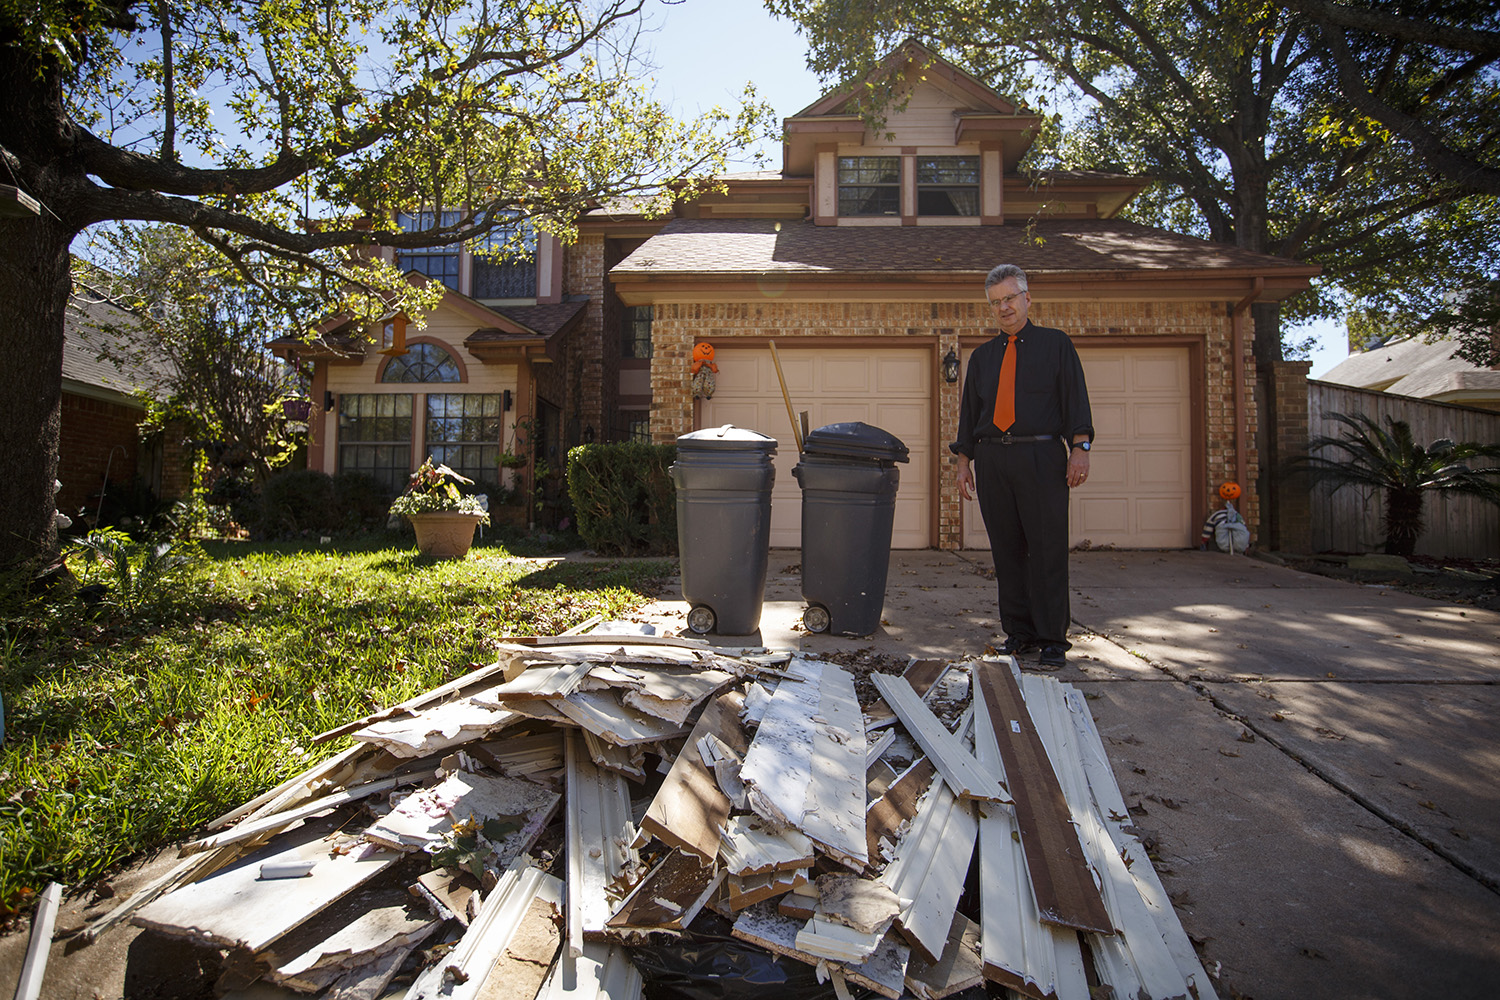 Michael Bolton at his home in northwest in Houston on Monday, Oct. 23, 2017. Bolton said his house is eligible for a buyout under FEMA criteria but doesn't qualify under local flood control district criteria.